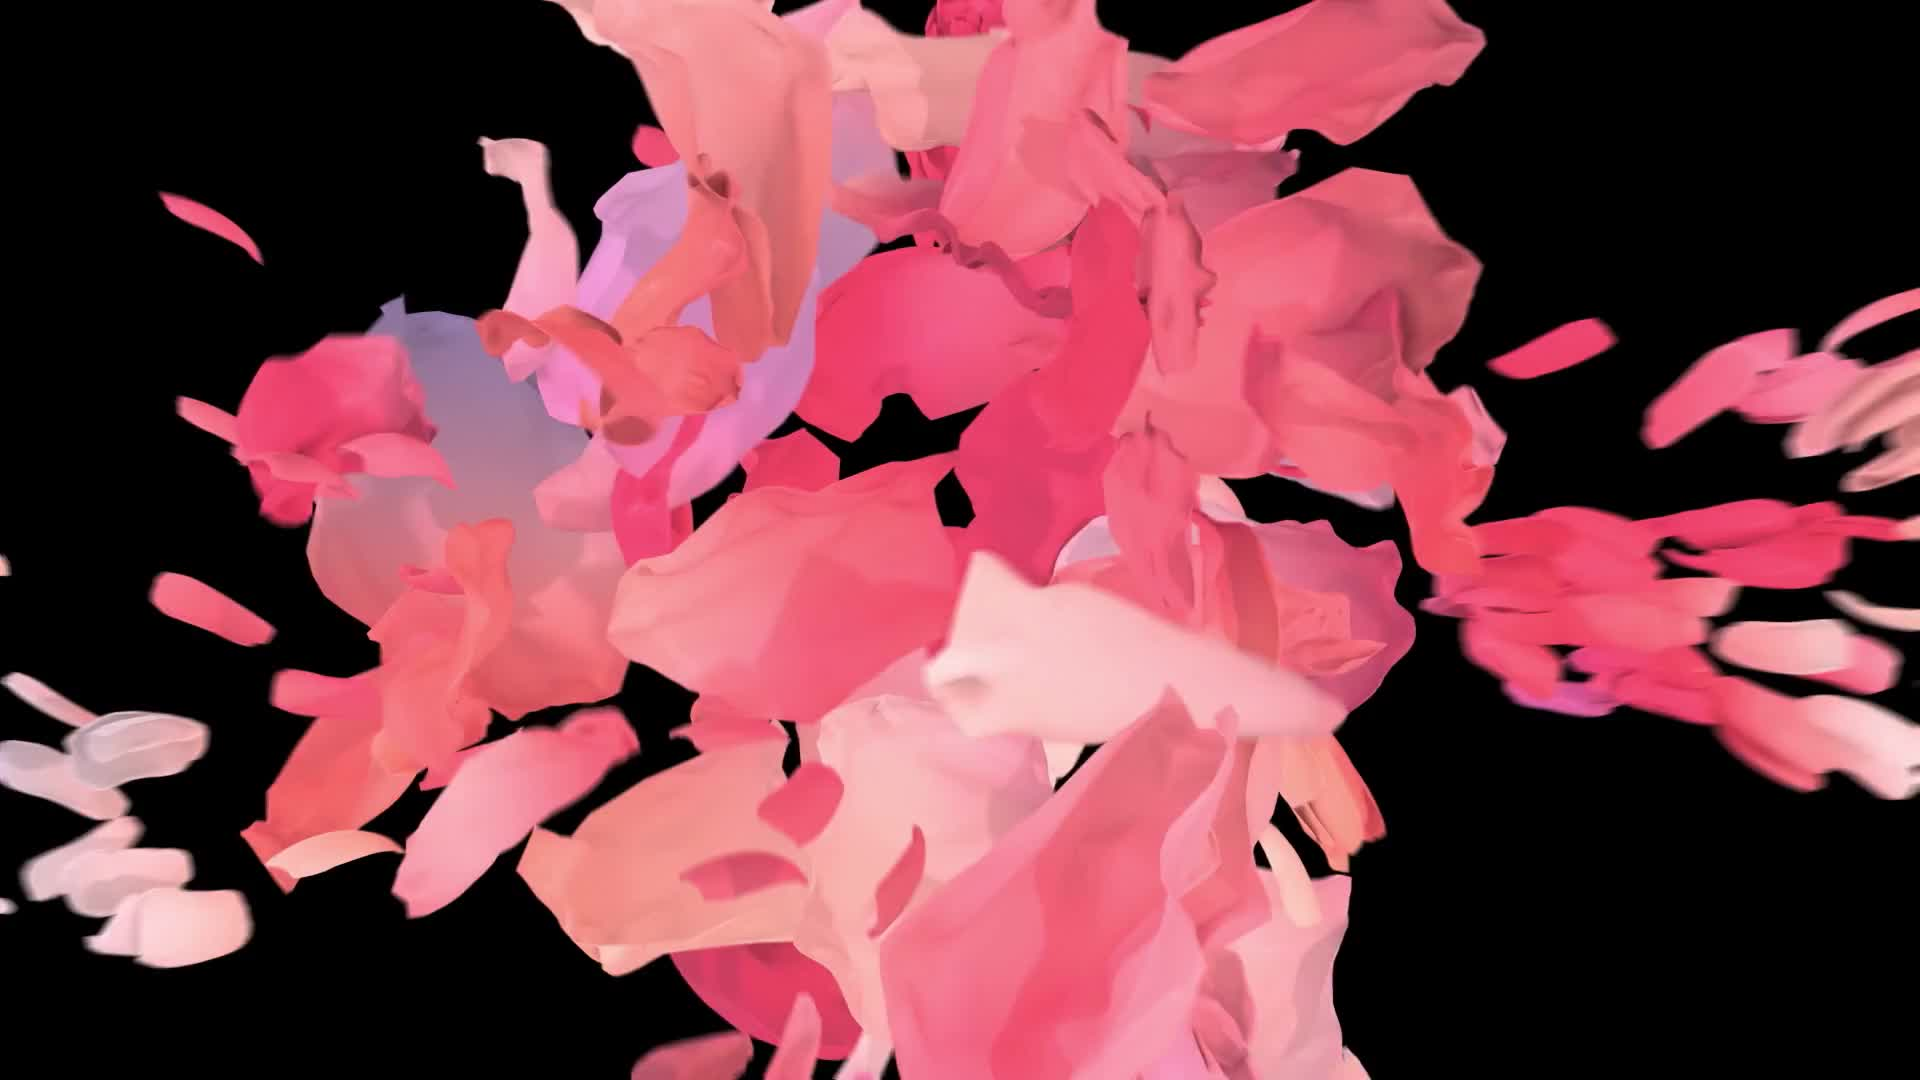 Prada flowers logo design cgi fashion film abstract flowers